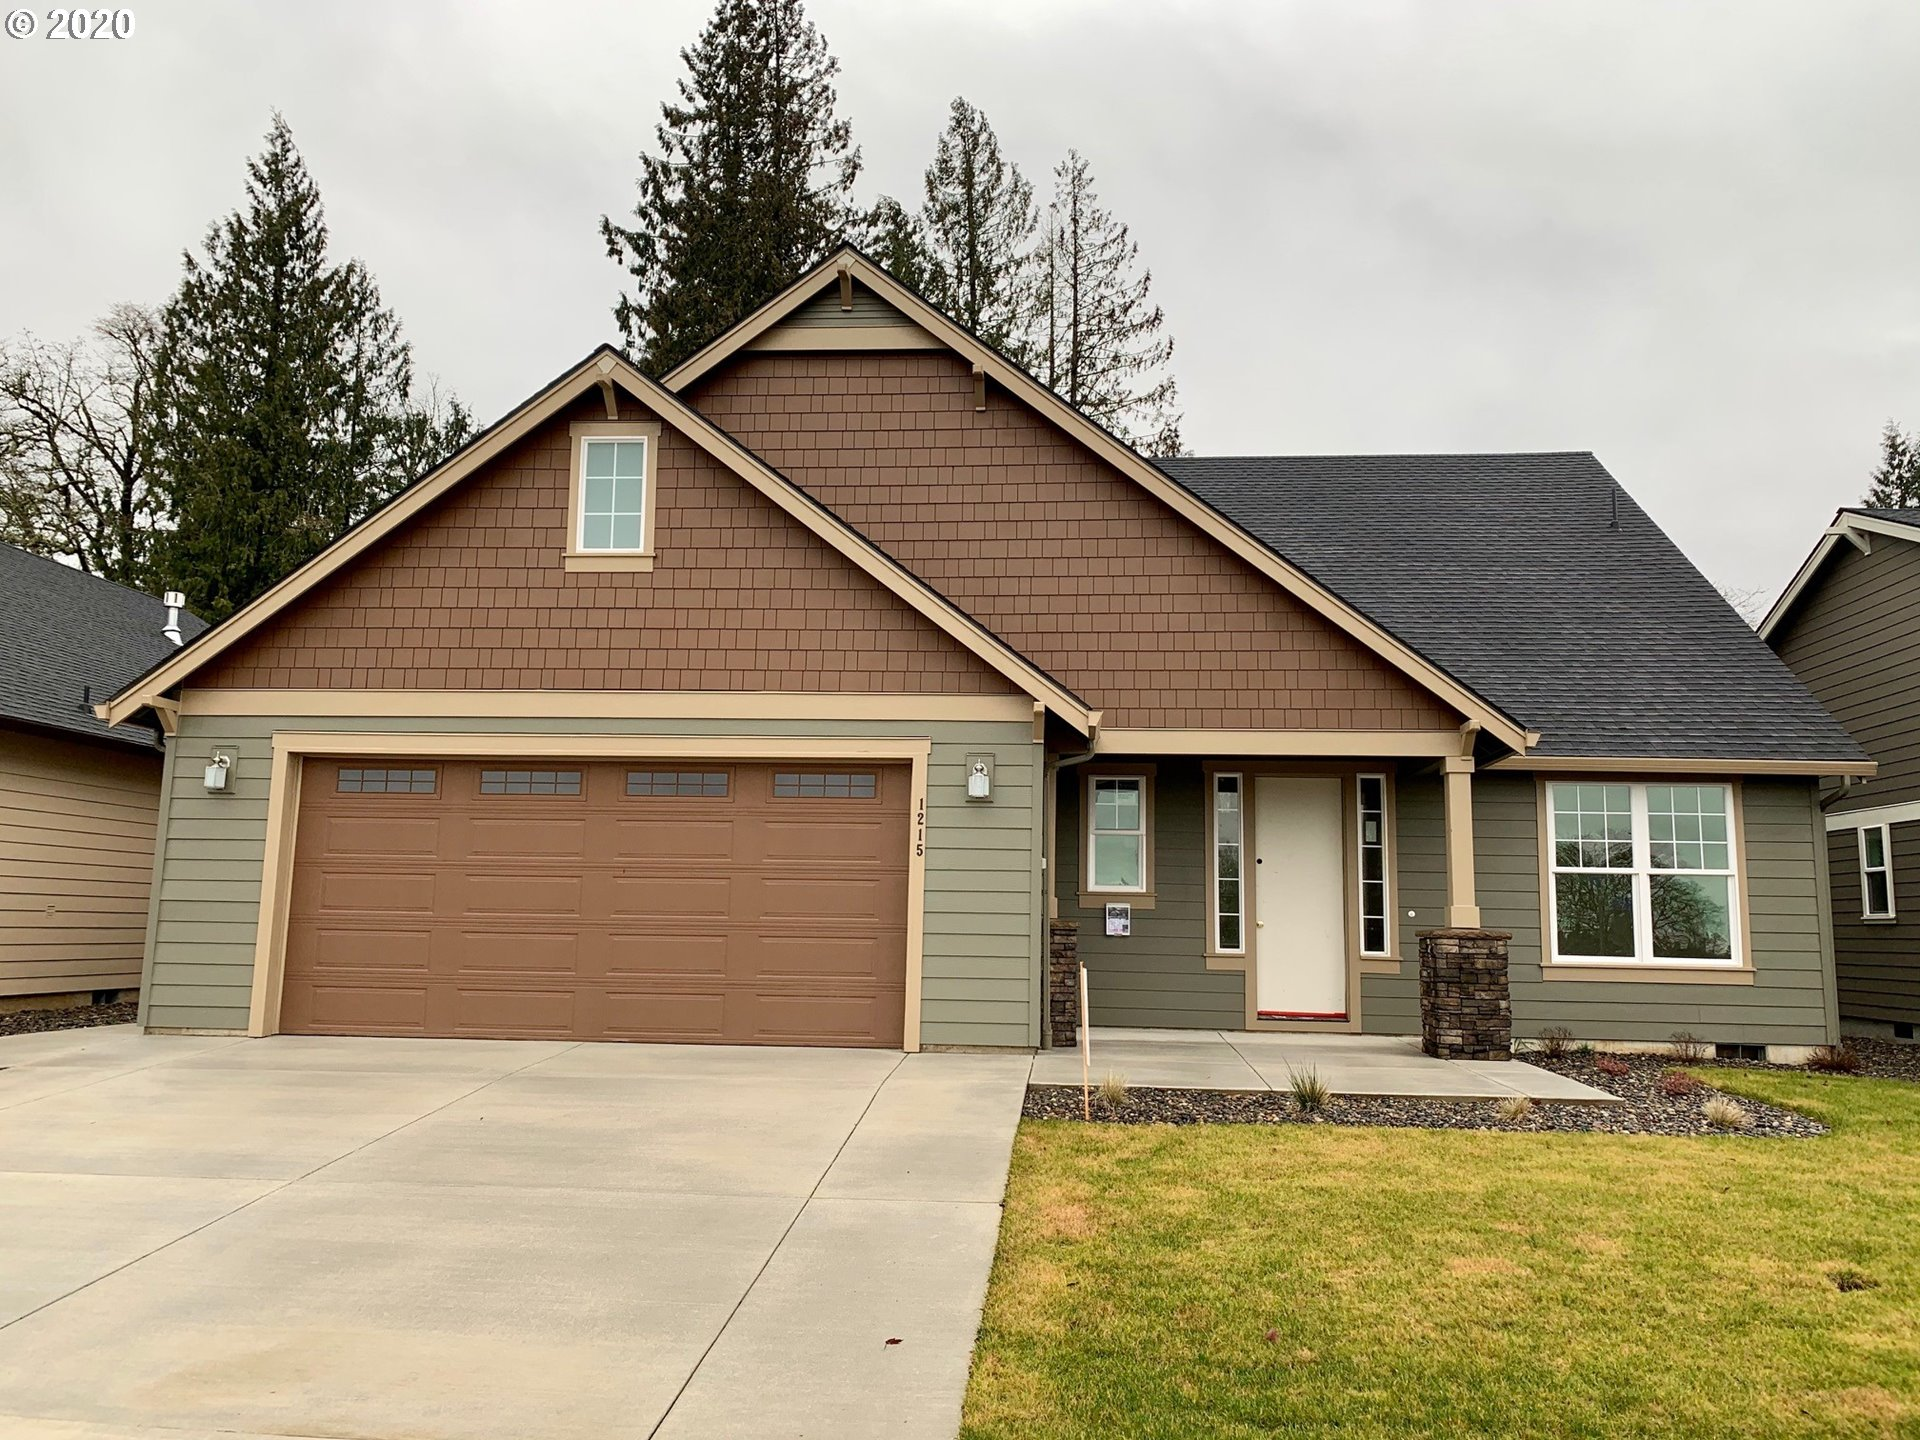 1215 SE 21st Ave, Battle Ground, WA 98604